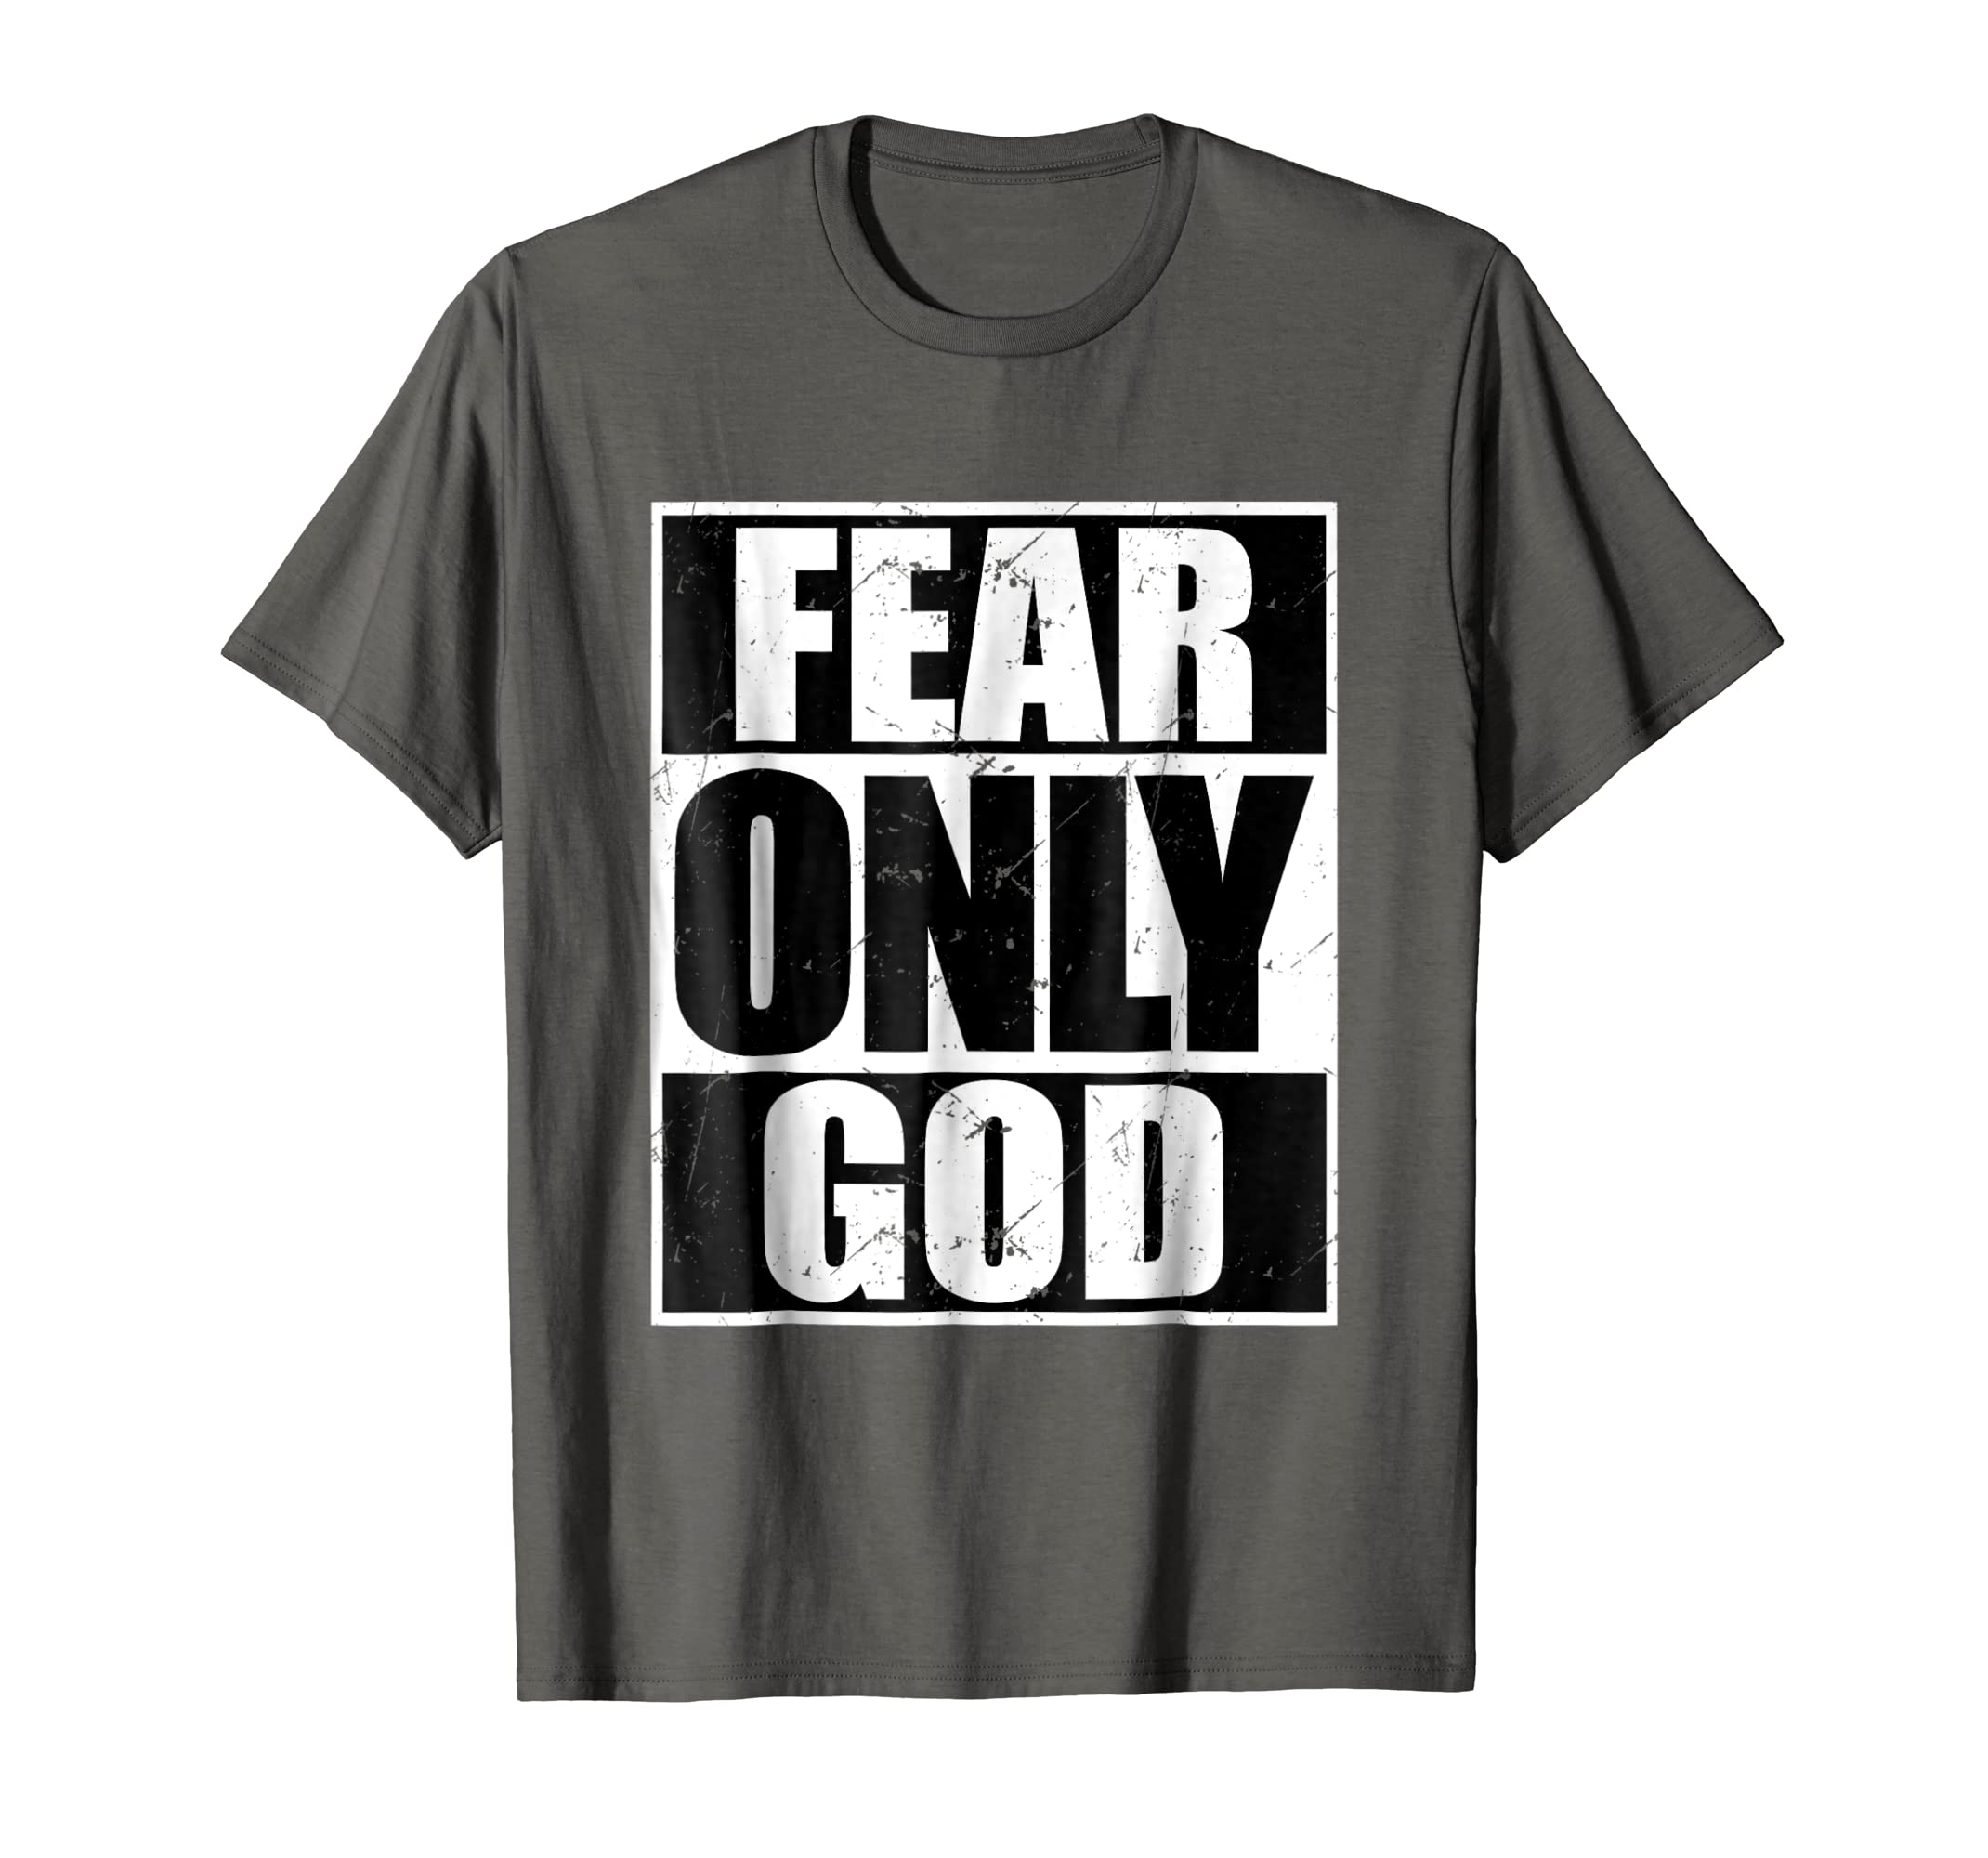 186f4624b1f2 Amazon.com: Fear Only God Cool Christian T-Shirt Funny Gift: Clothing